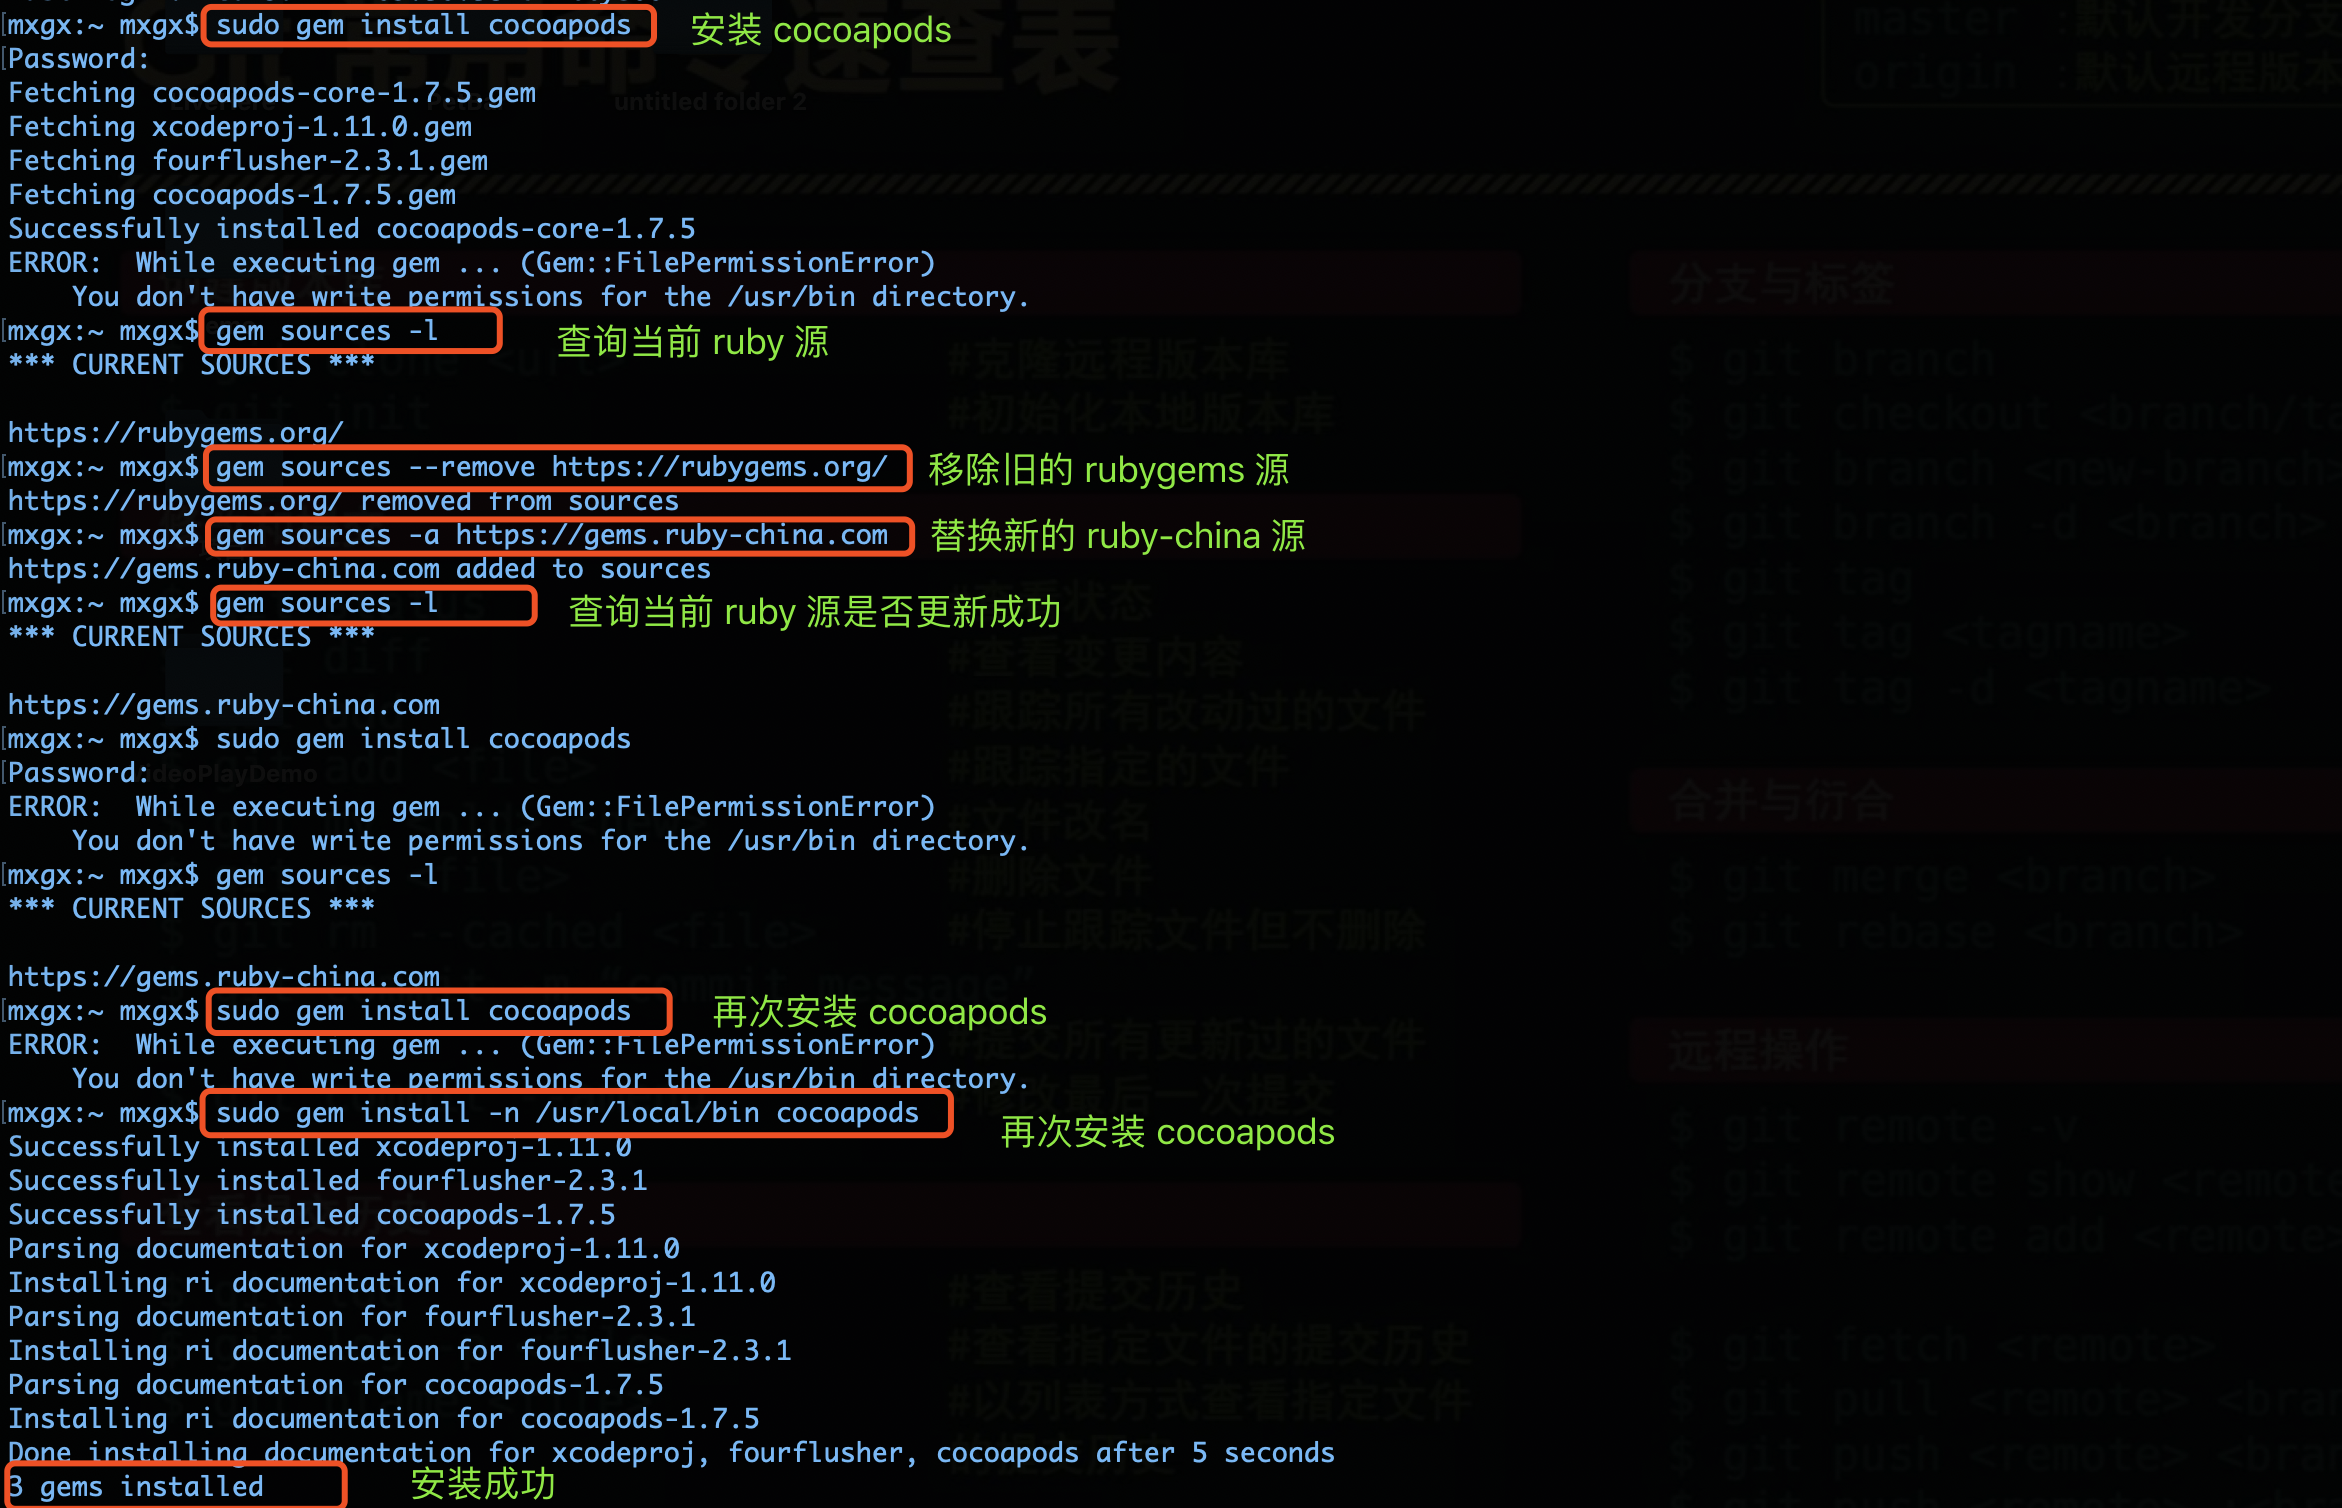 ERROR:  While executing gem ... (Gem::FilePermissionError) You don't have write permissions for the /usr/bin directory.